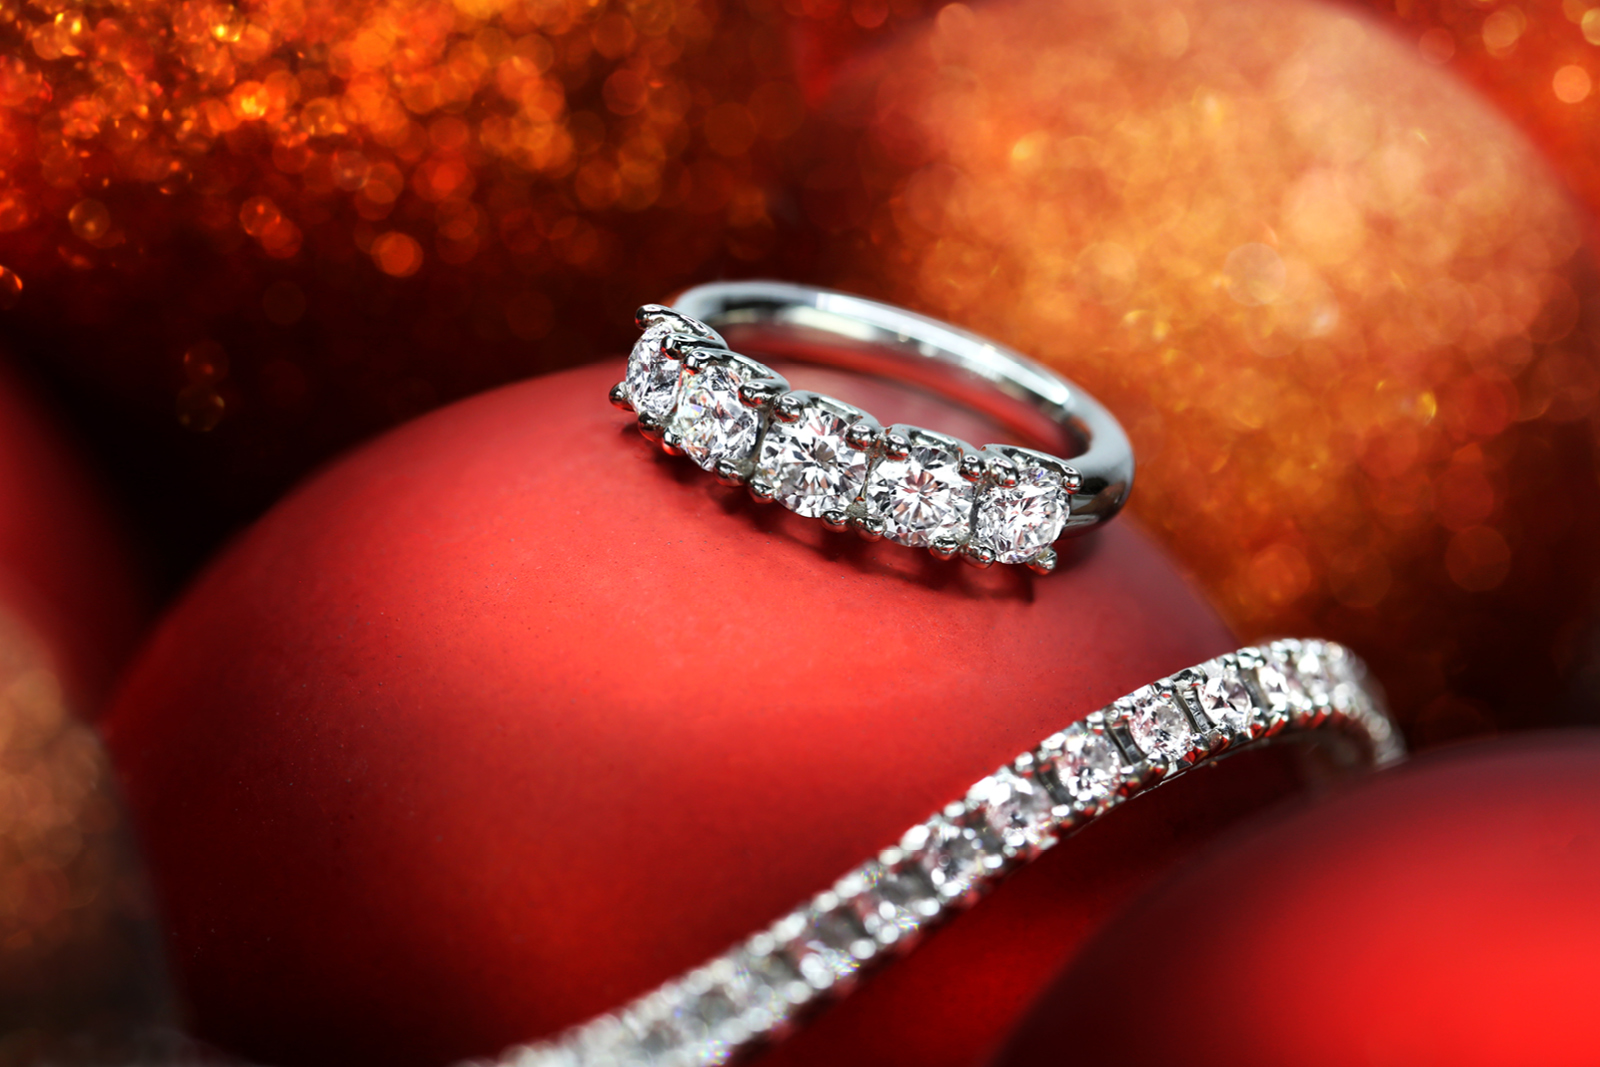 Luxury jewellery photography and retouching for Paul Sheeran Jewellers, Dublin